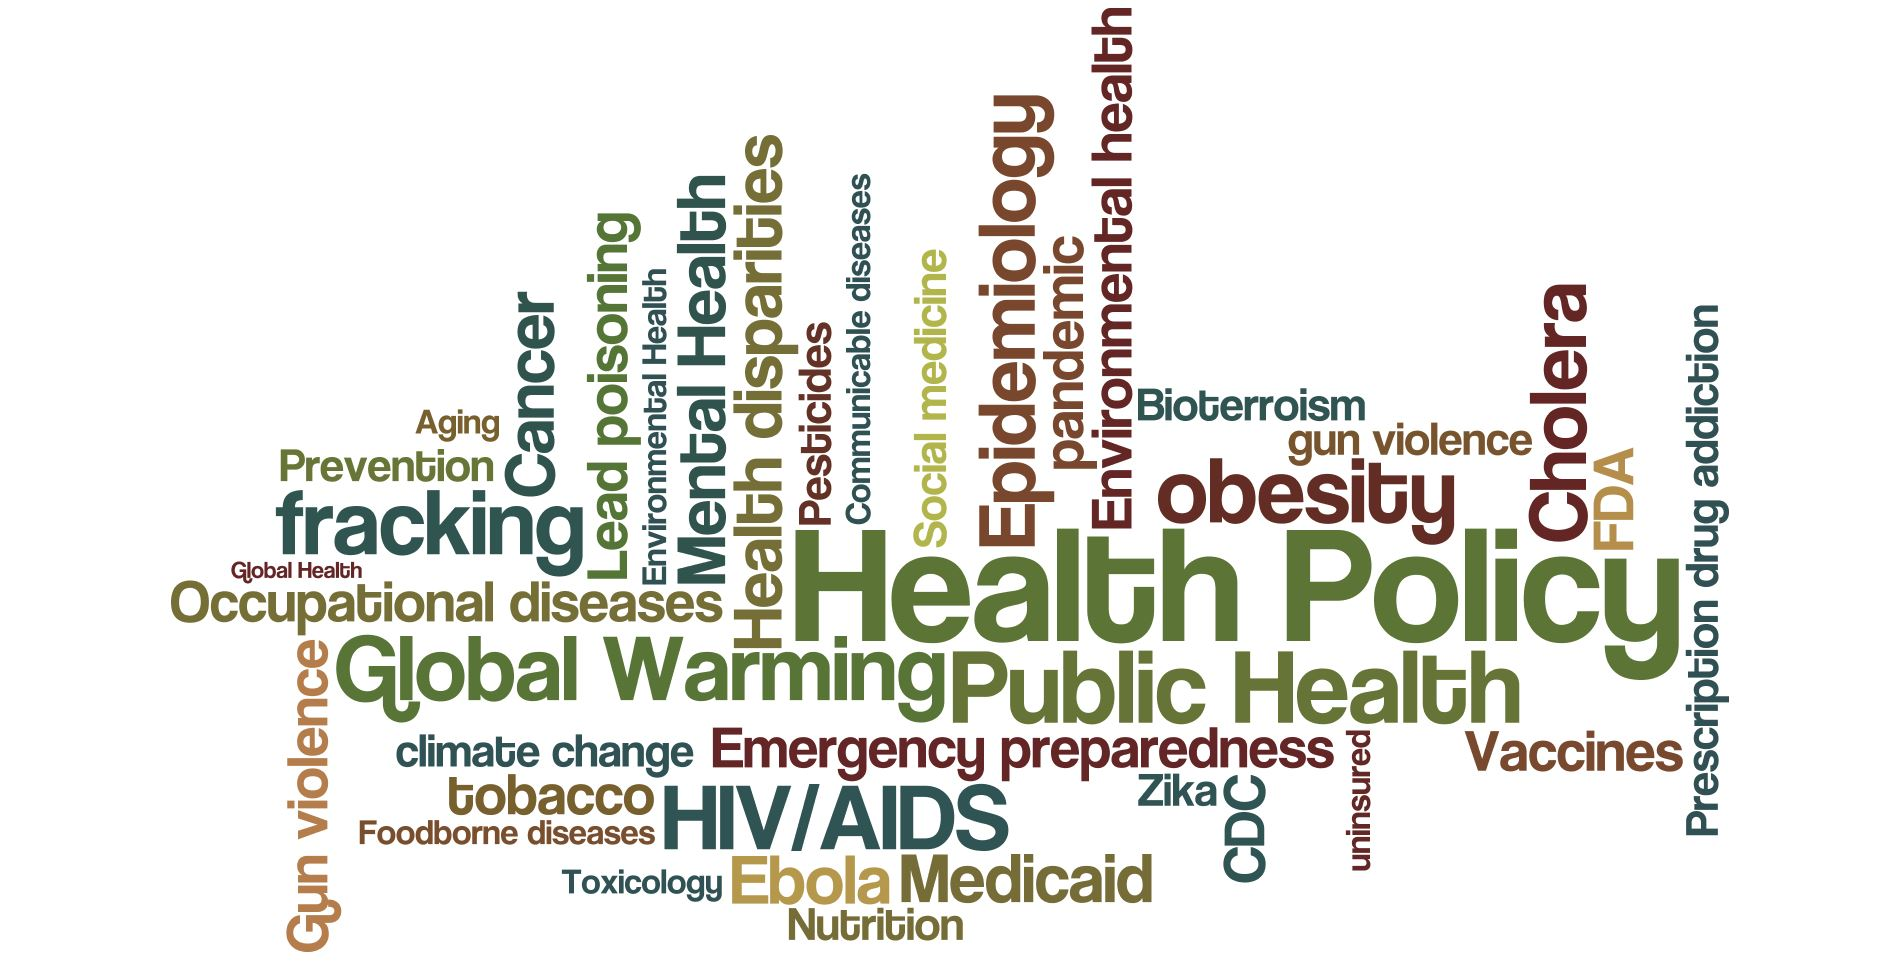 Health Policy Wordle